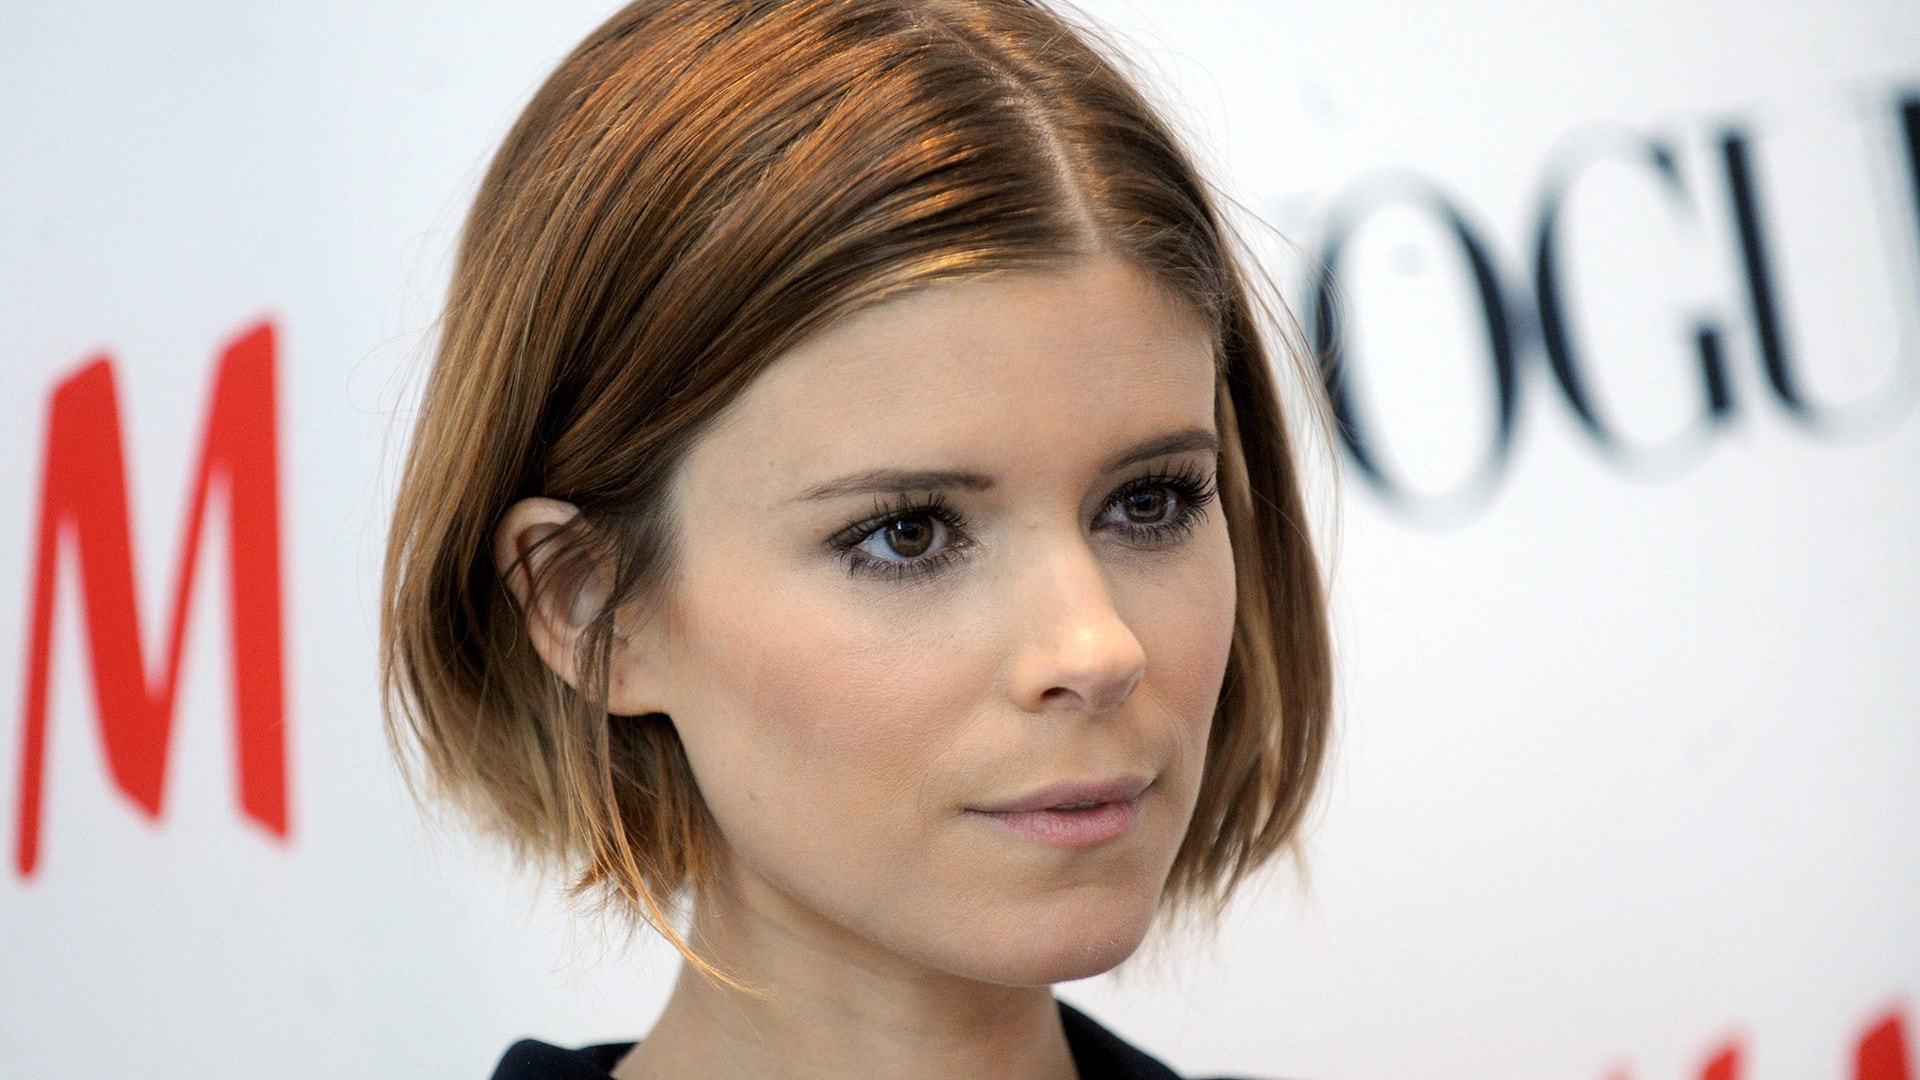 Kate Mara Wallpapers hd